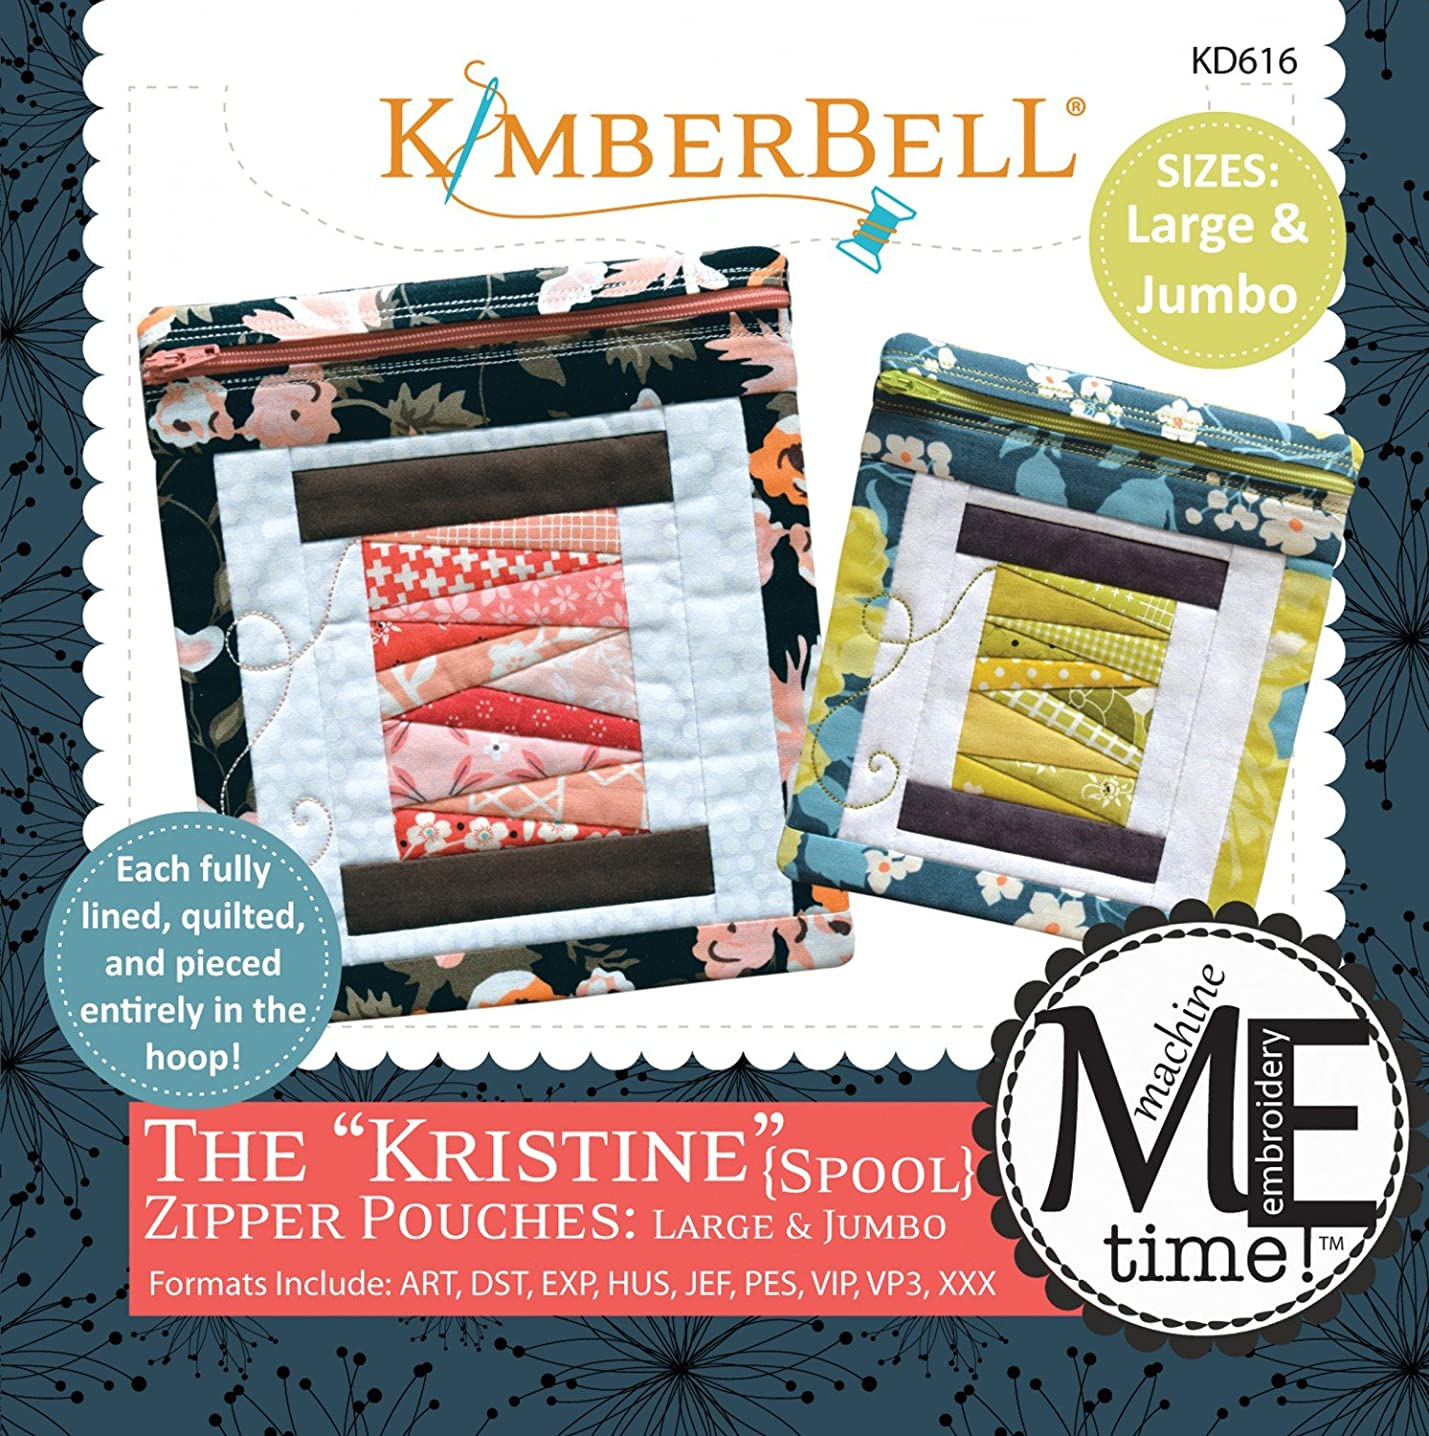 Kimberbell Designs The Kristine Zipper Pouches Spool Large and Jumbo with Embroidery CD KD616